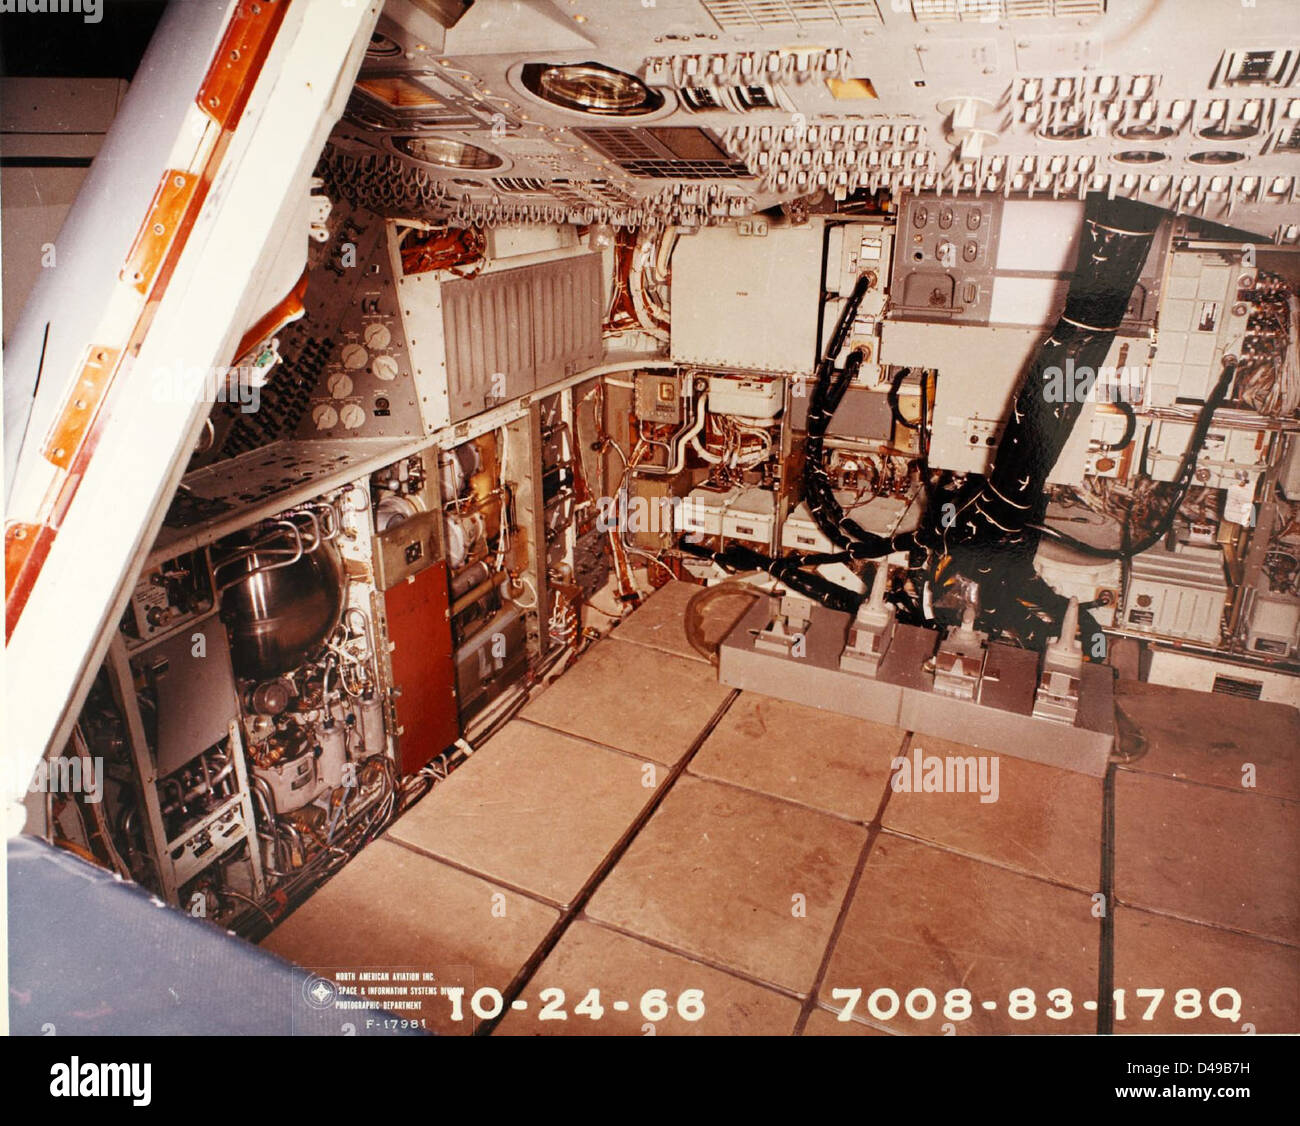 inside apollo capsule houston - photo #9